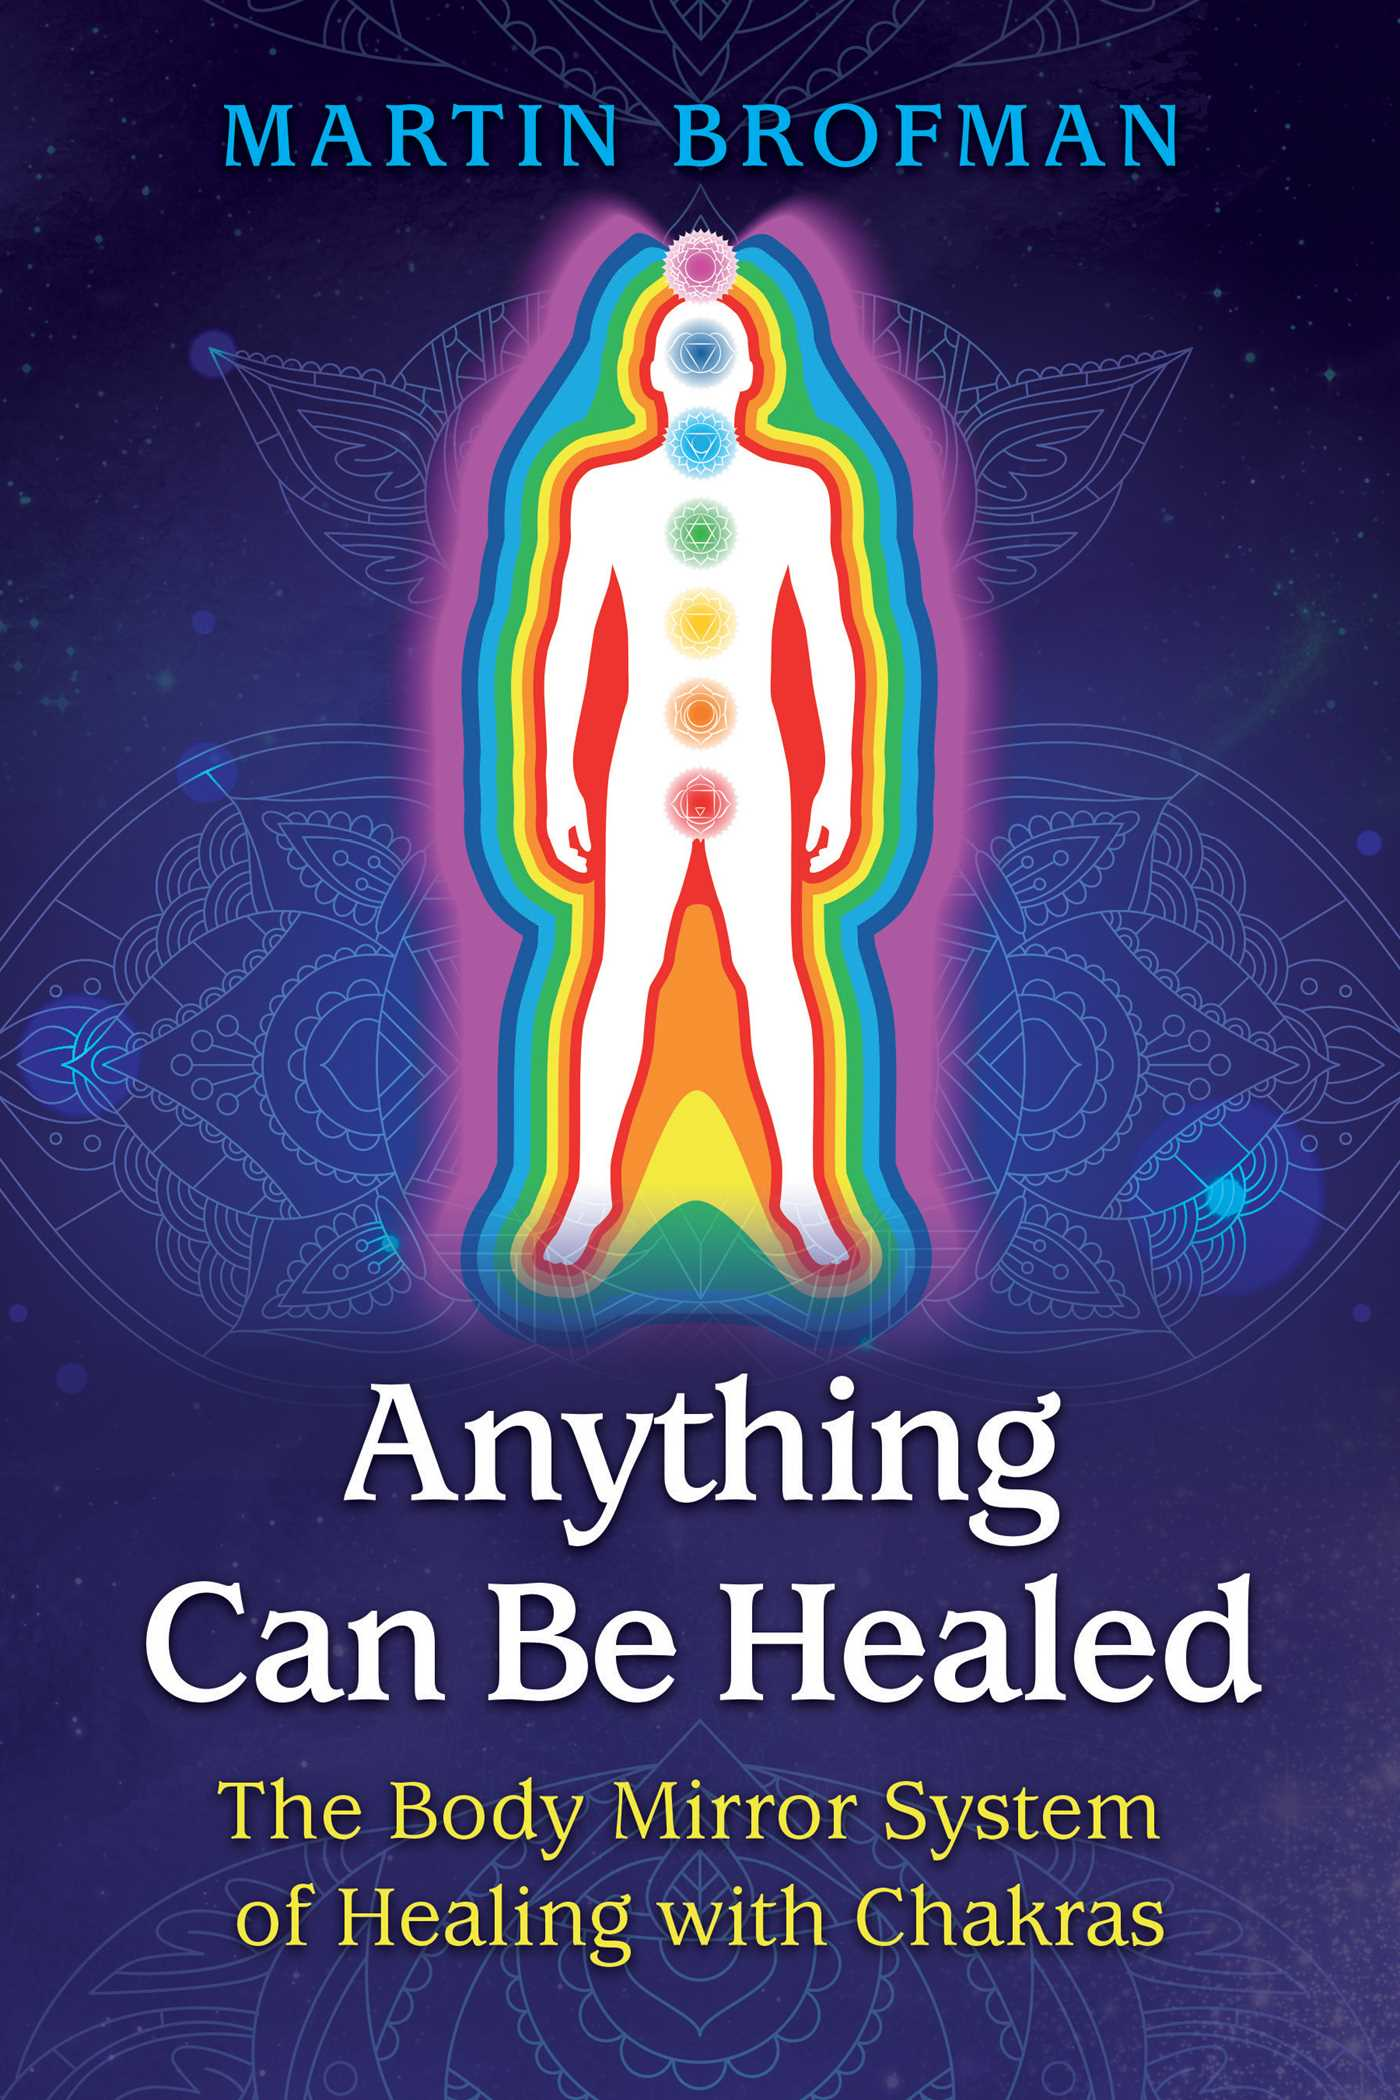 Anything Can be Healed; Martin Brofman